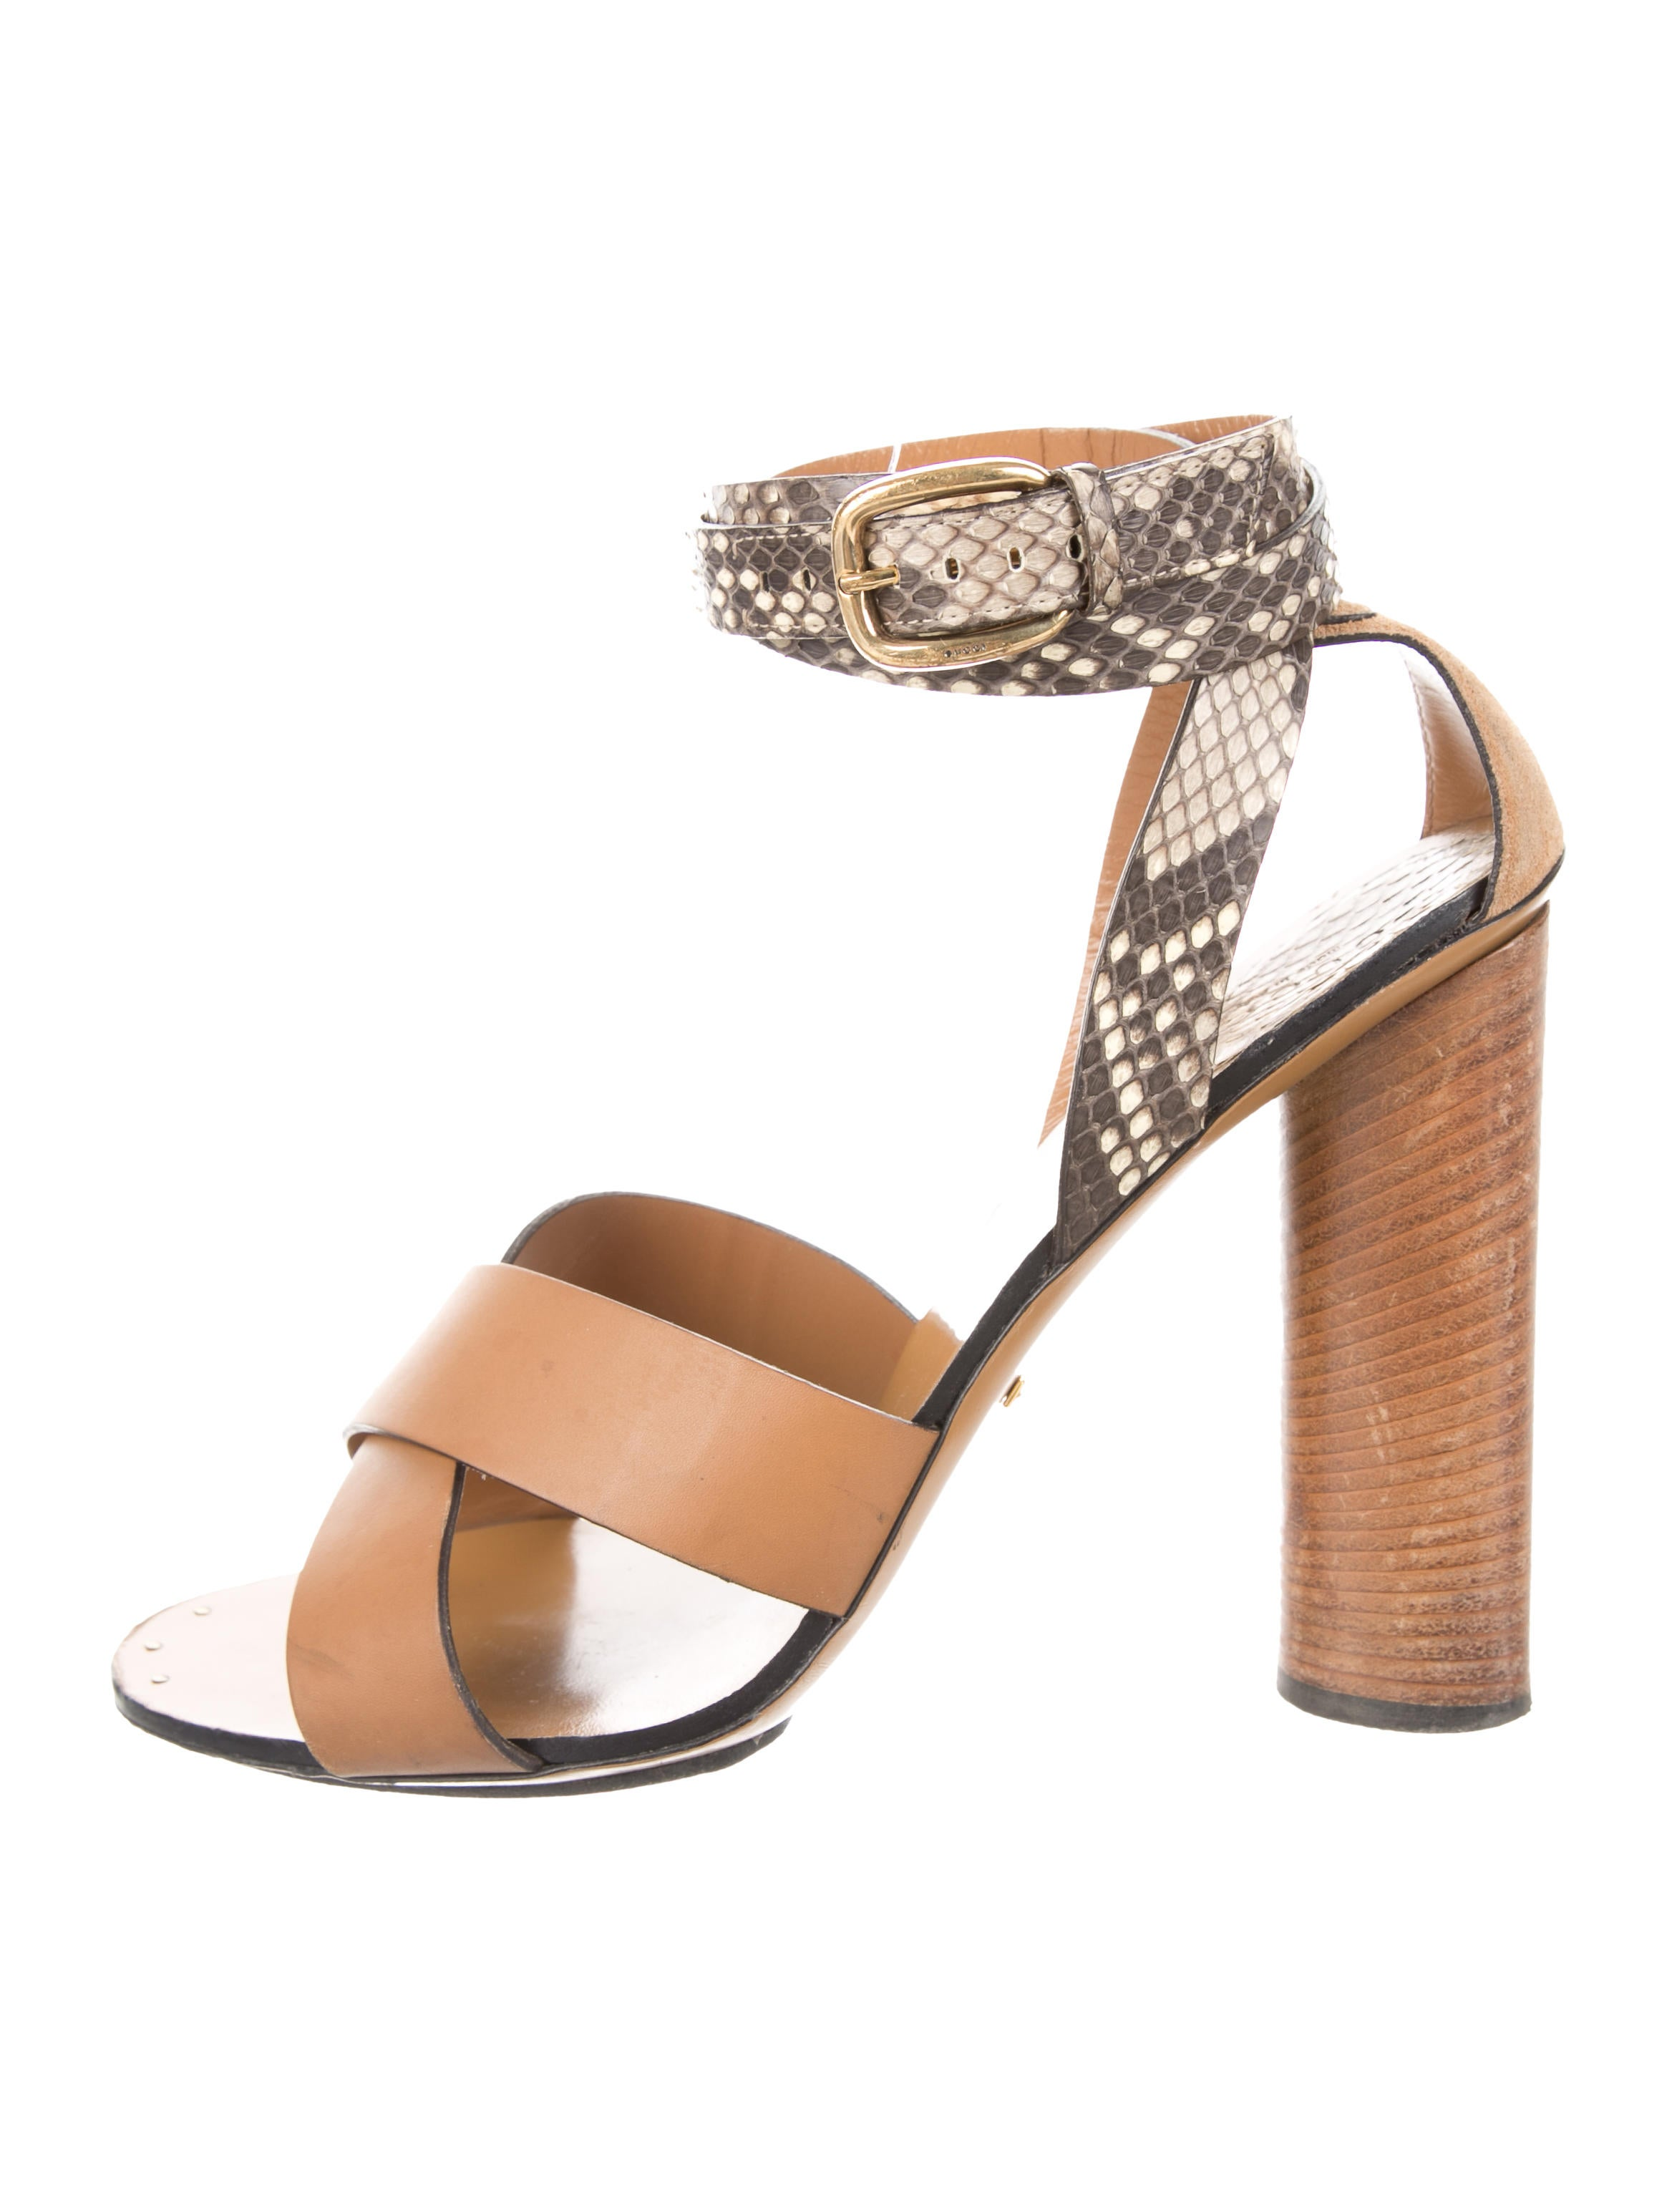 90c7f3487eff Gucci Snakeskin-Trimmed Crossover Sandals - Shoes - GUC197216